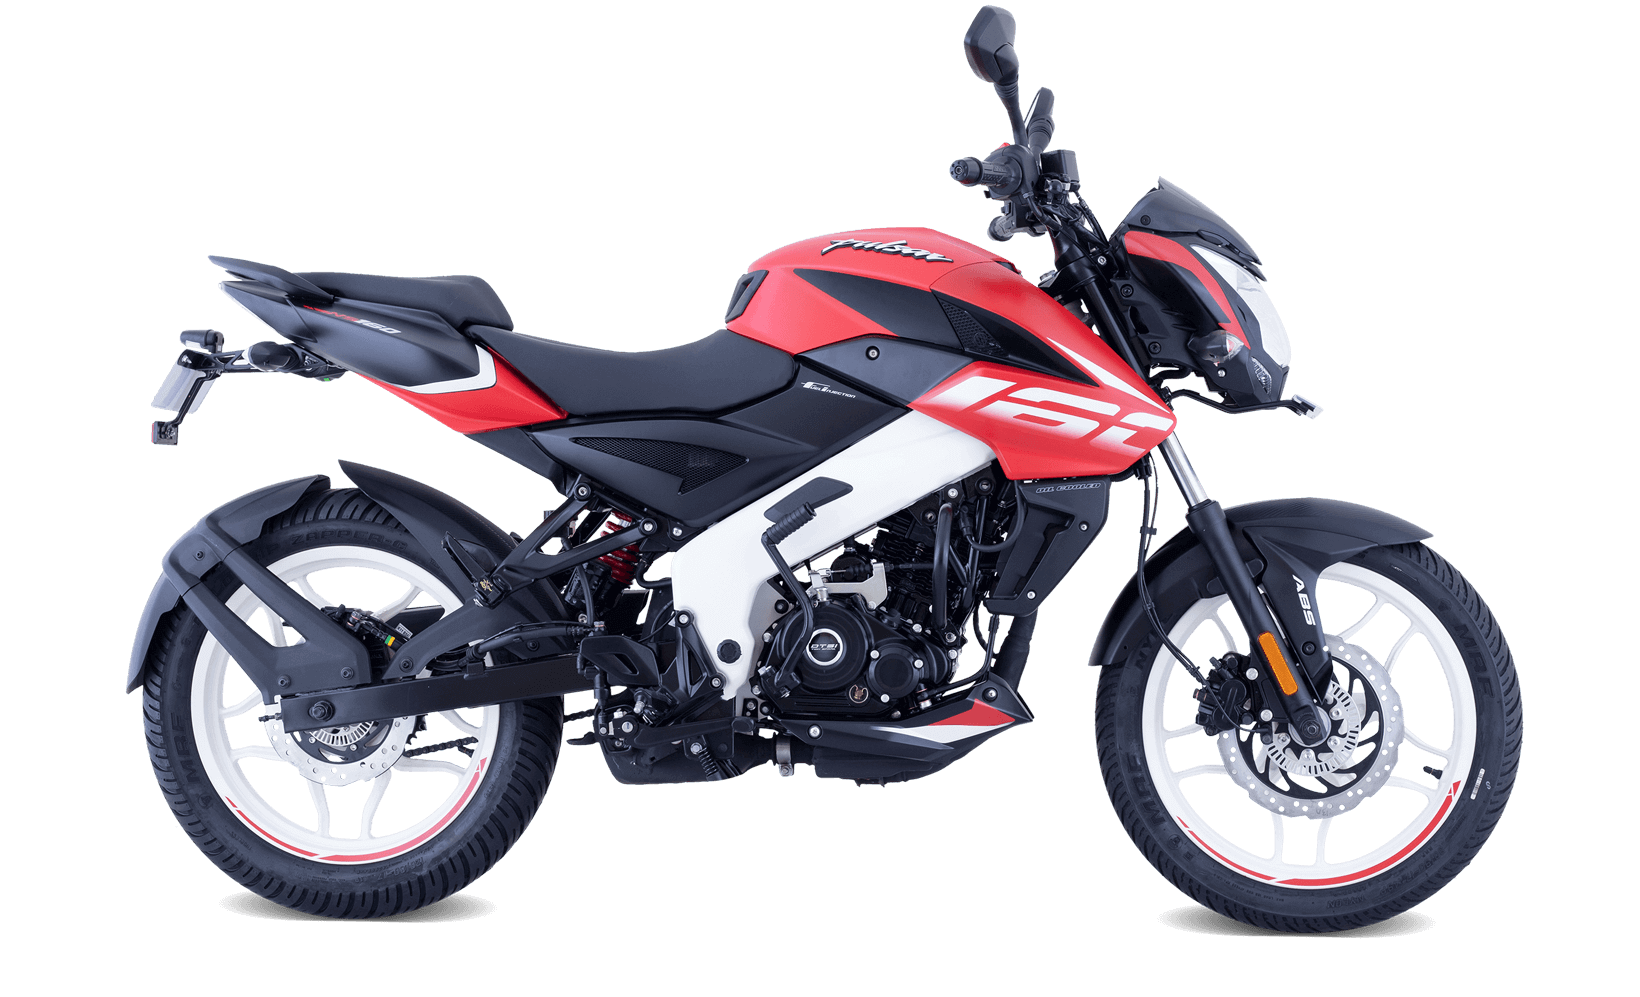 Pulsar-NS160-Twin-Disc-ABS-Motorcycle